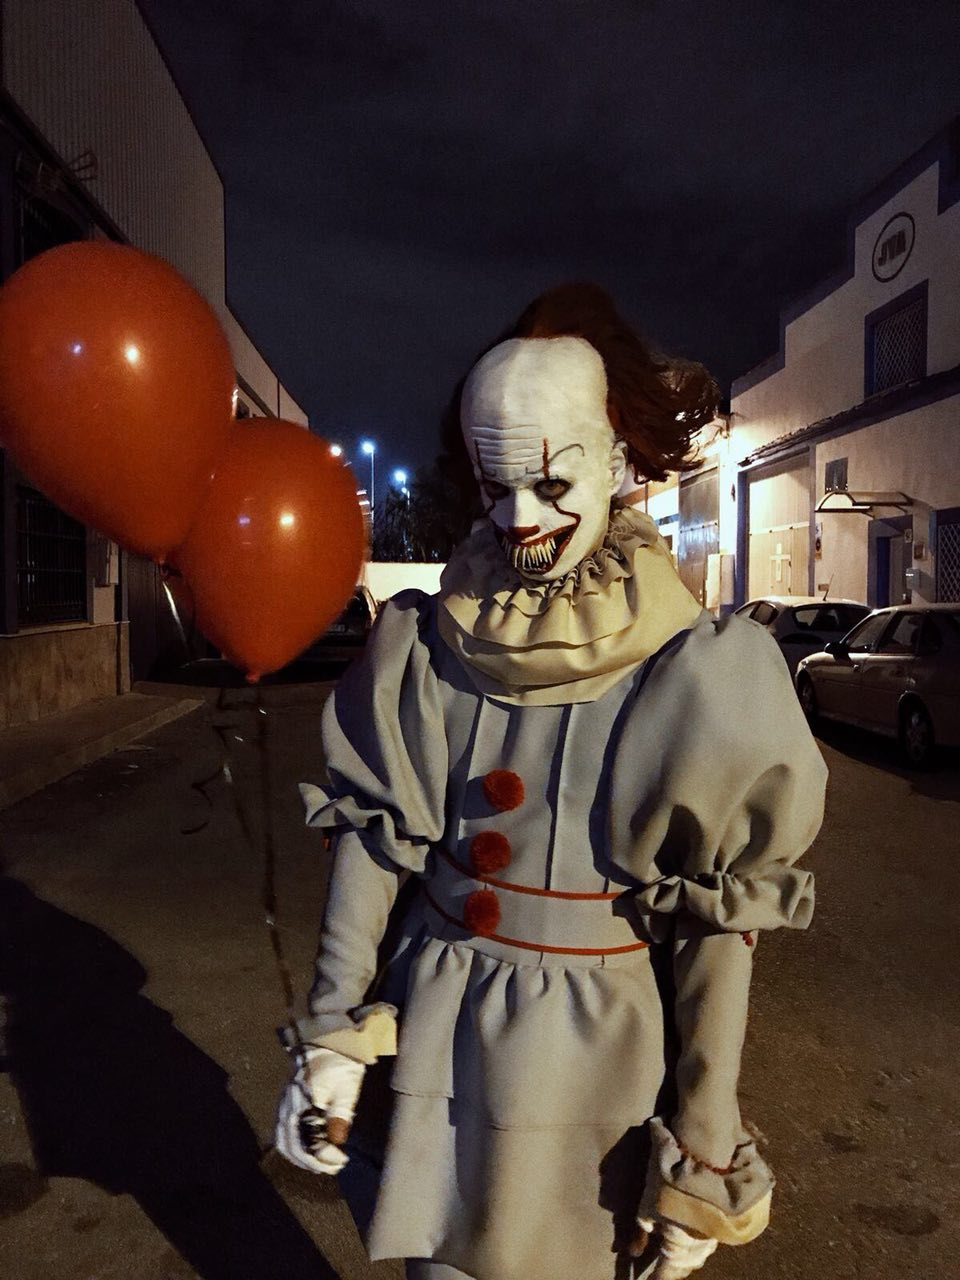 Disfraz pennywise 2017